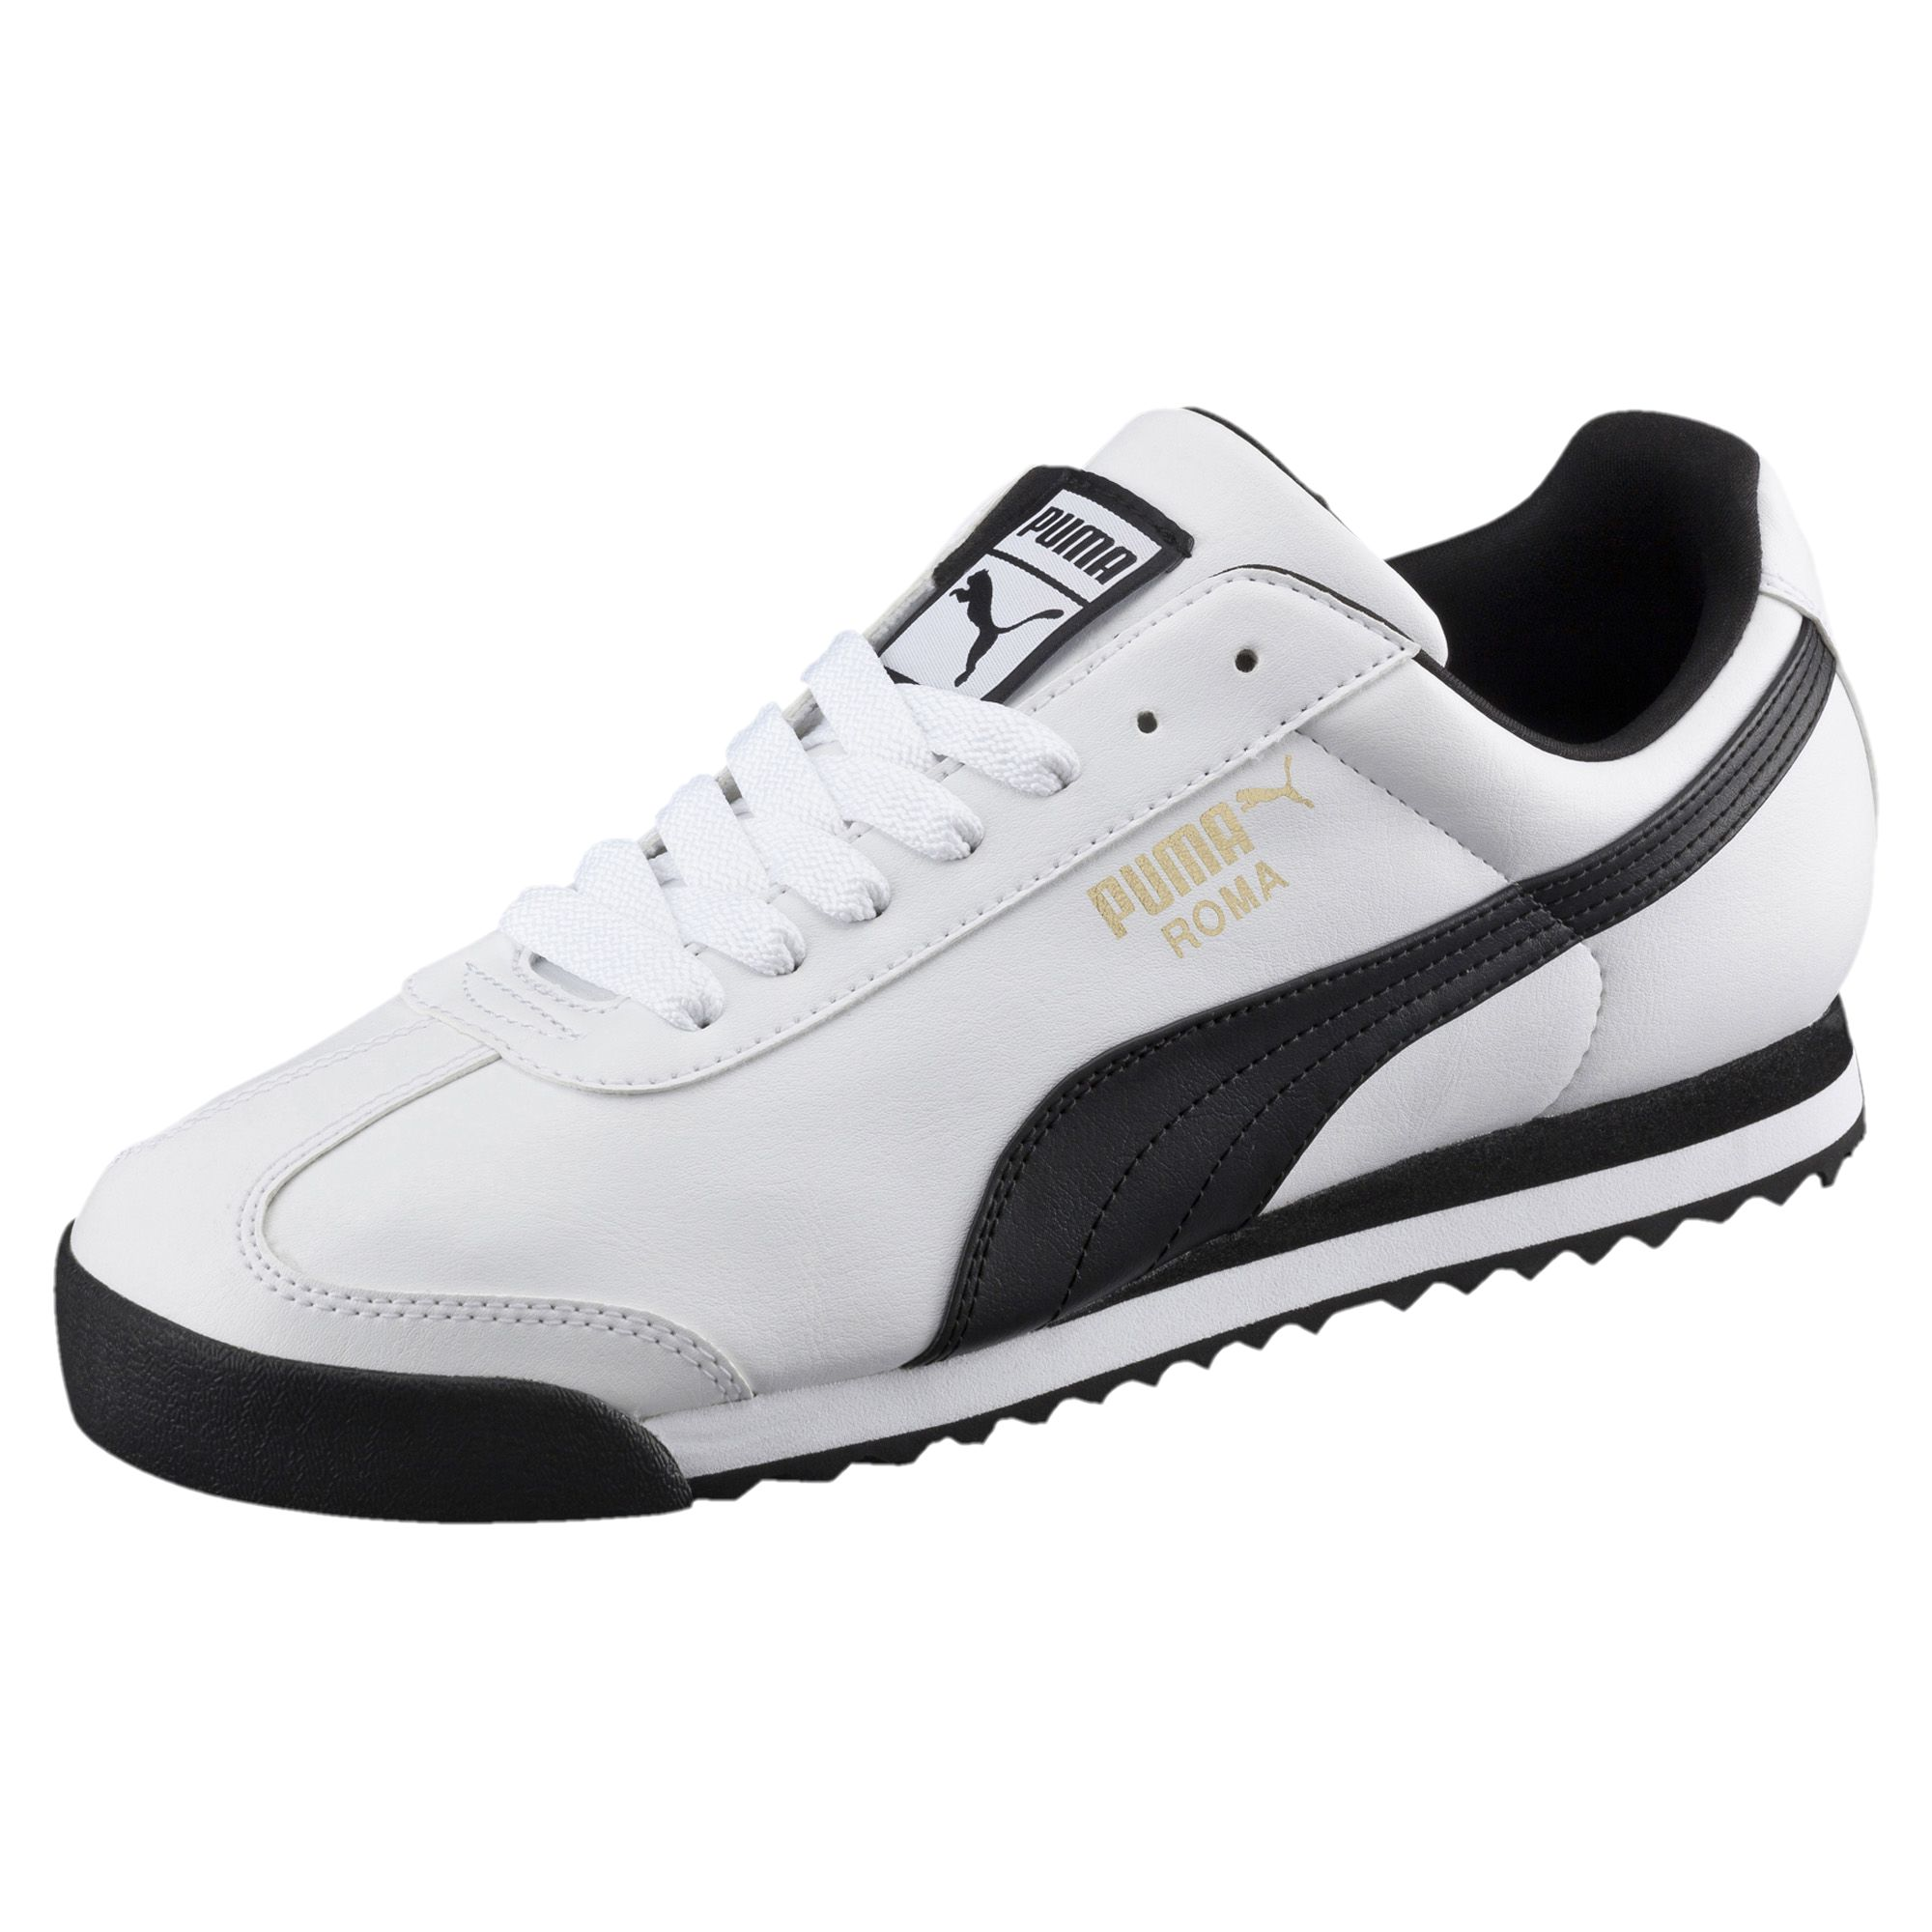 Puma Roma Basic Trainers - White / Black